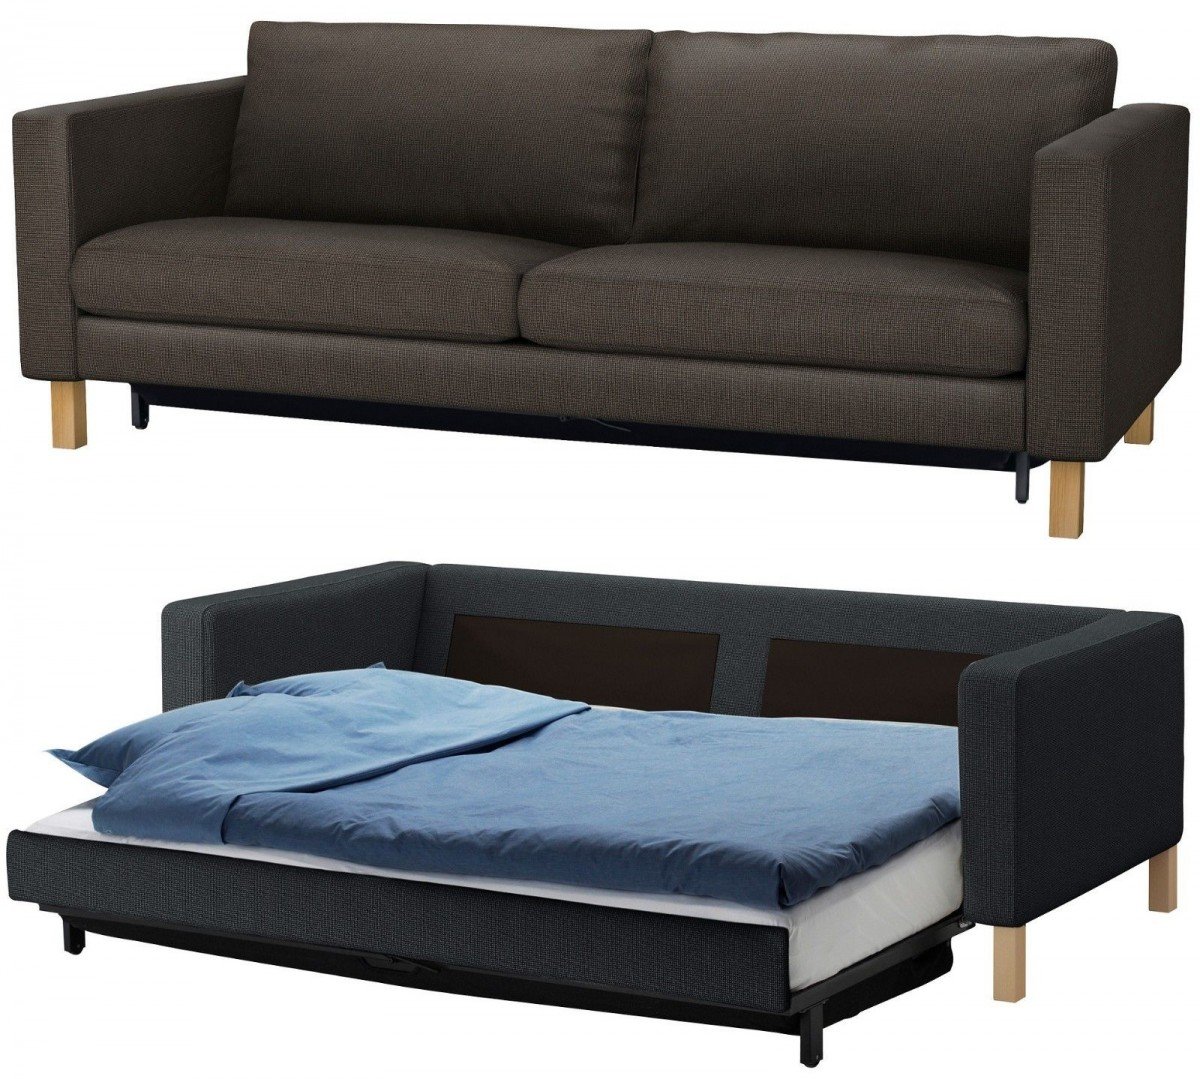 sectional sleeper sofa ikea photo - 5